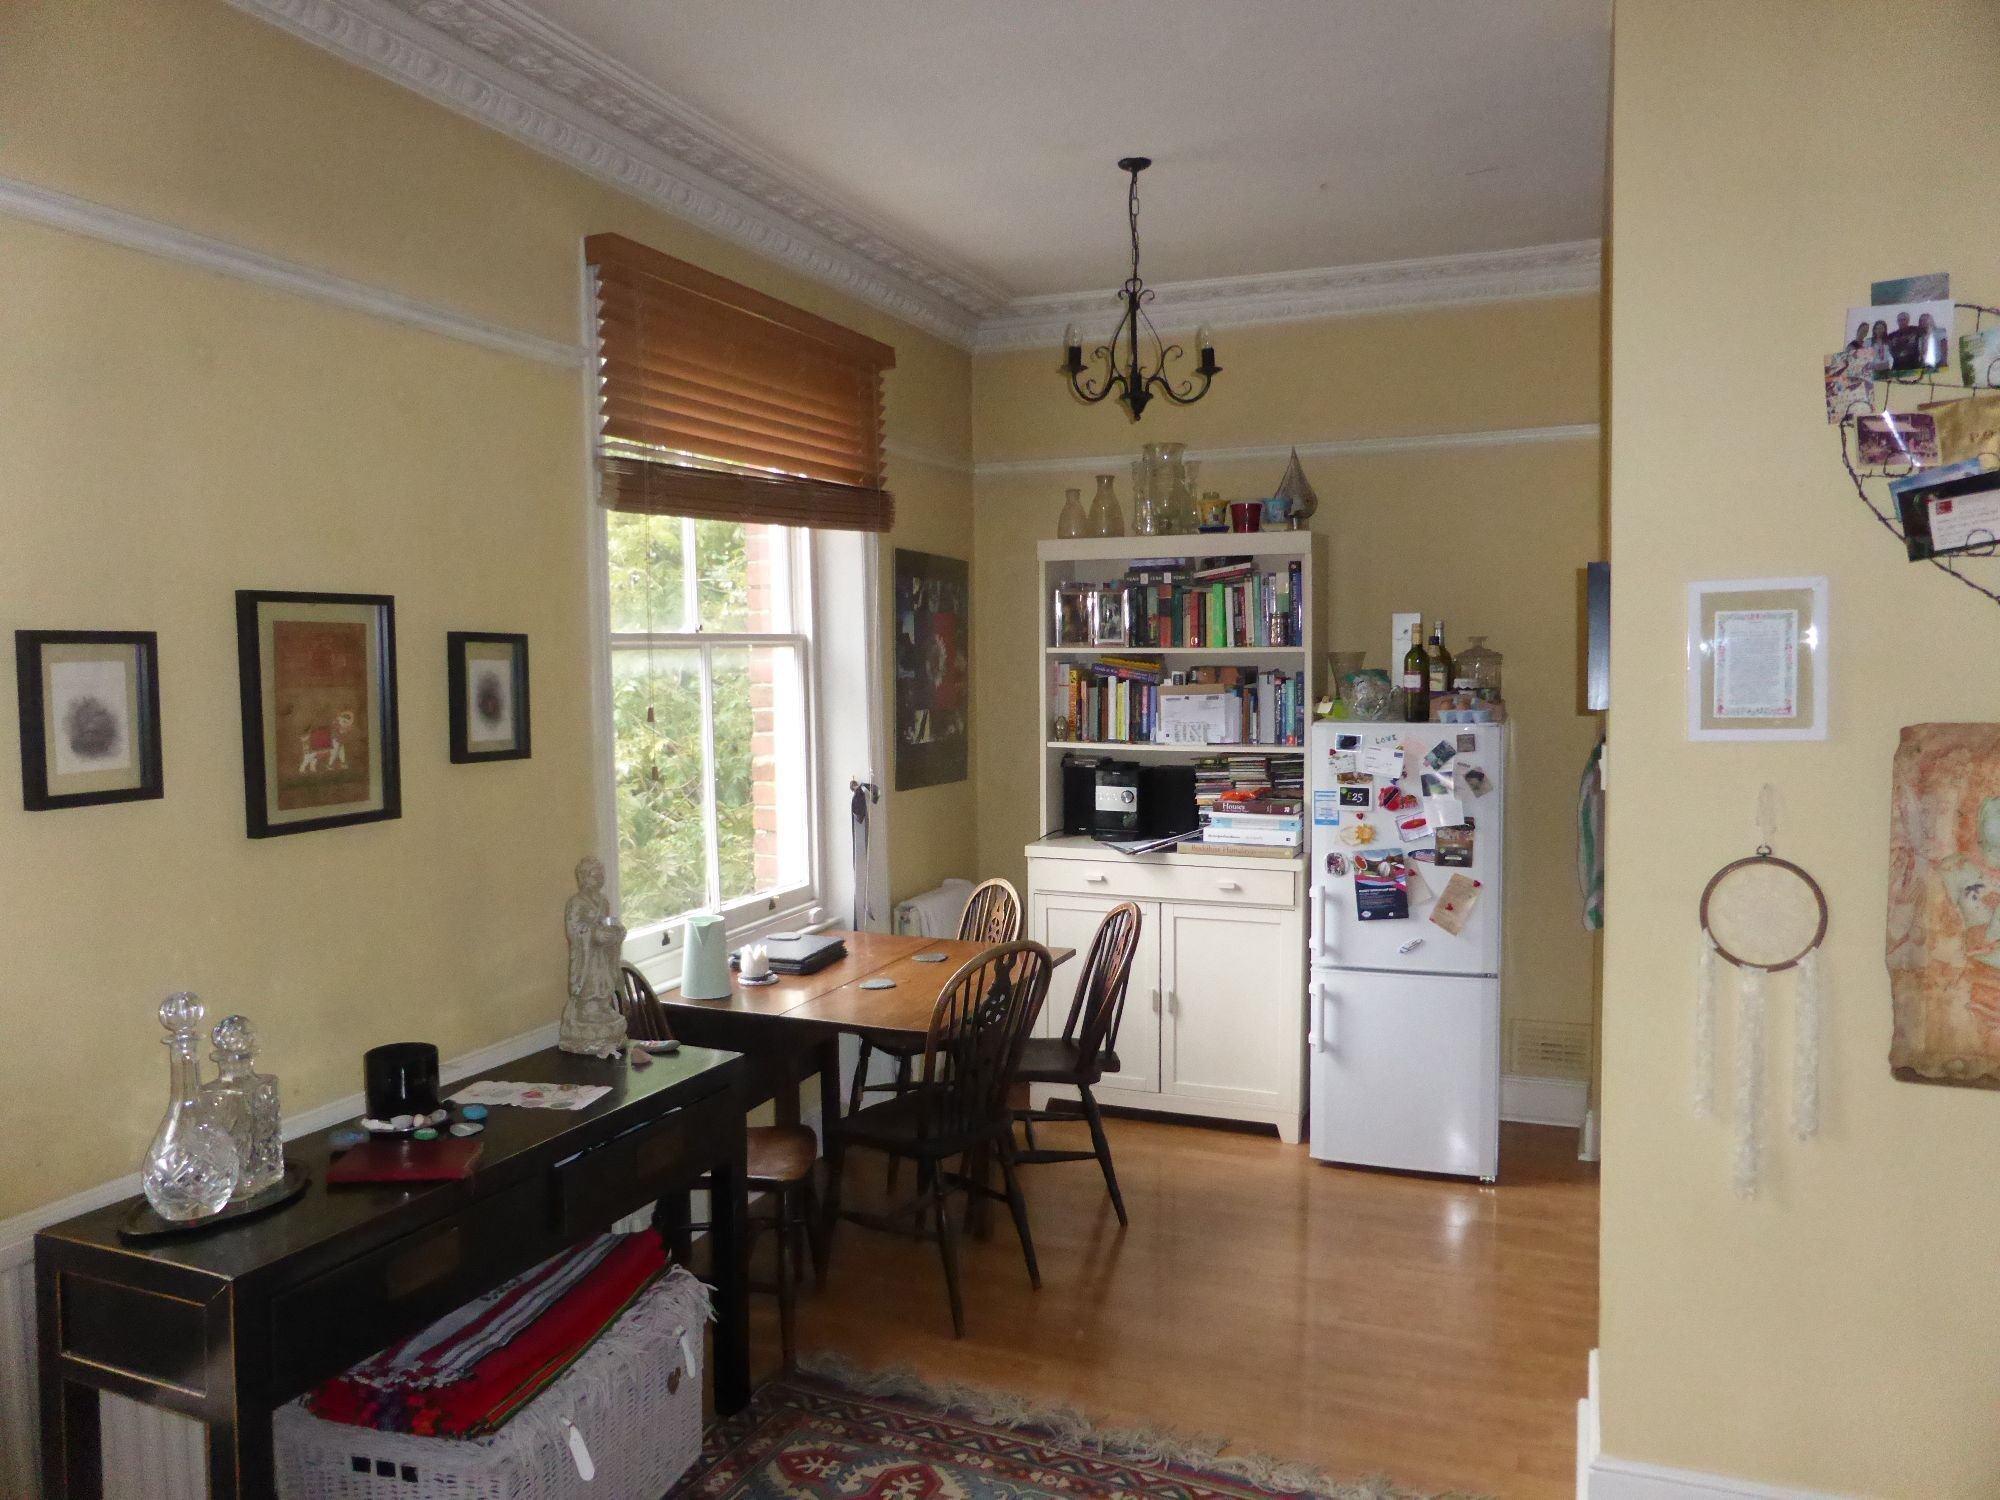 Best 1 Bed Flat To Rent Church Road Richmond Tw10 6Ln With Pictures Original 1024 x 768